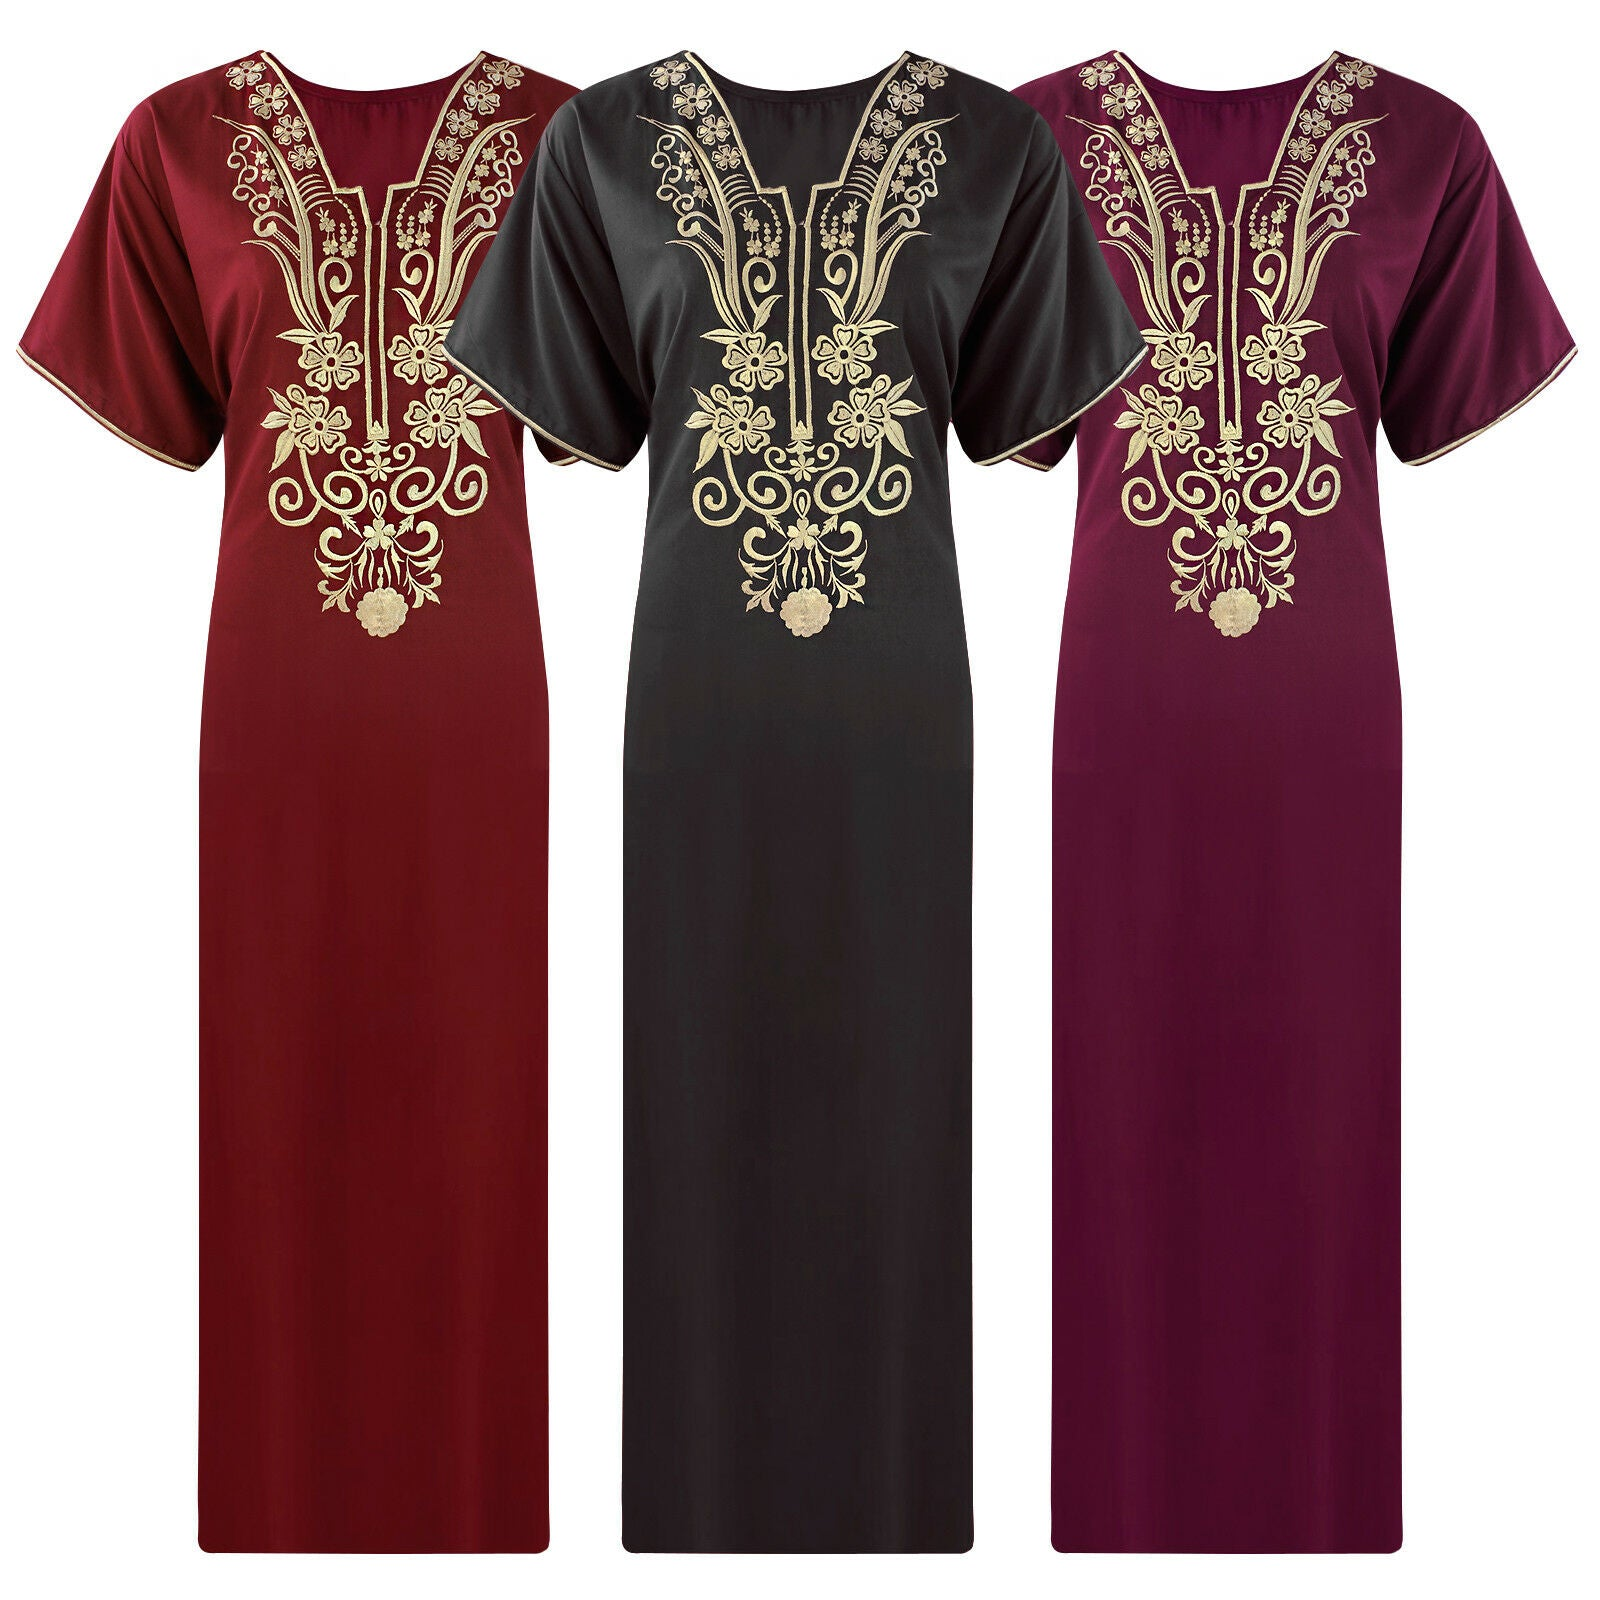 Cotton Rich Embroidery Plus Size Nightdress [colour]- Hautie UK, #Nightfashion | #Underfashion